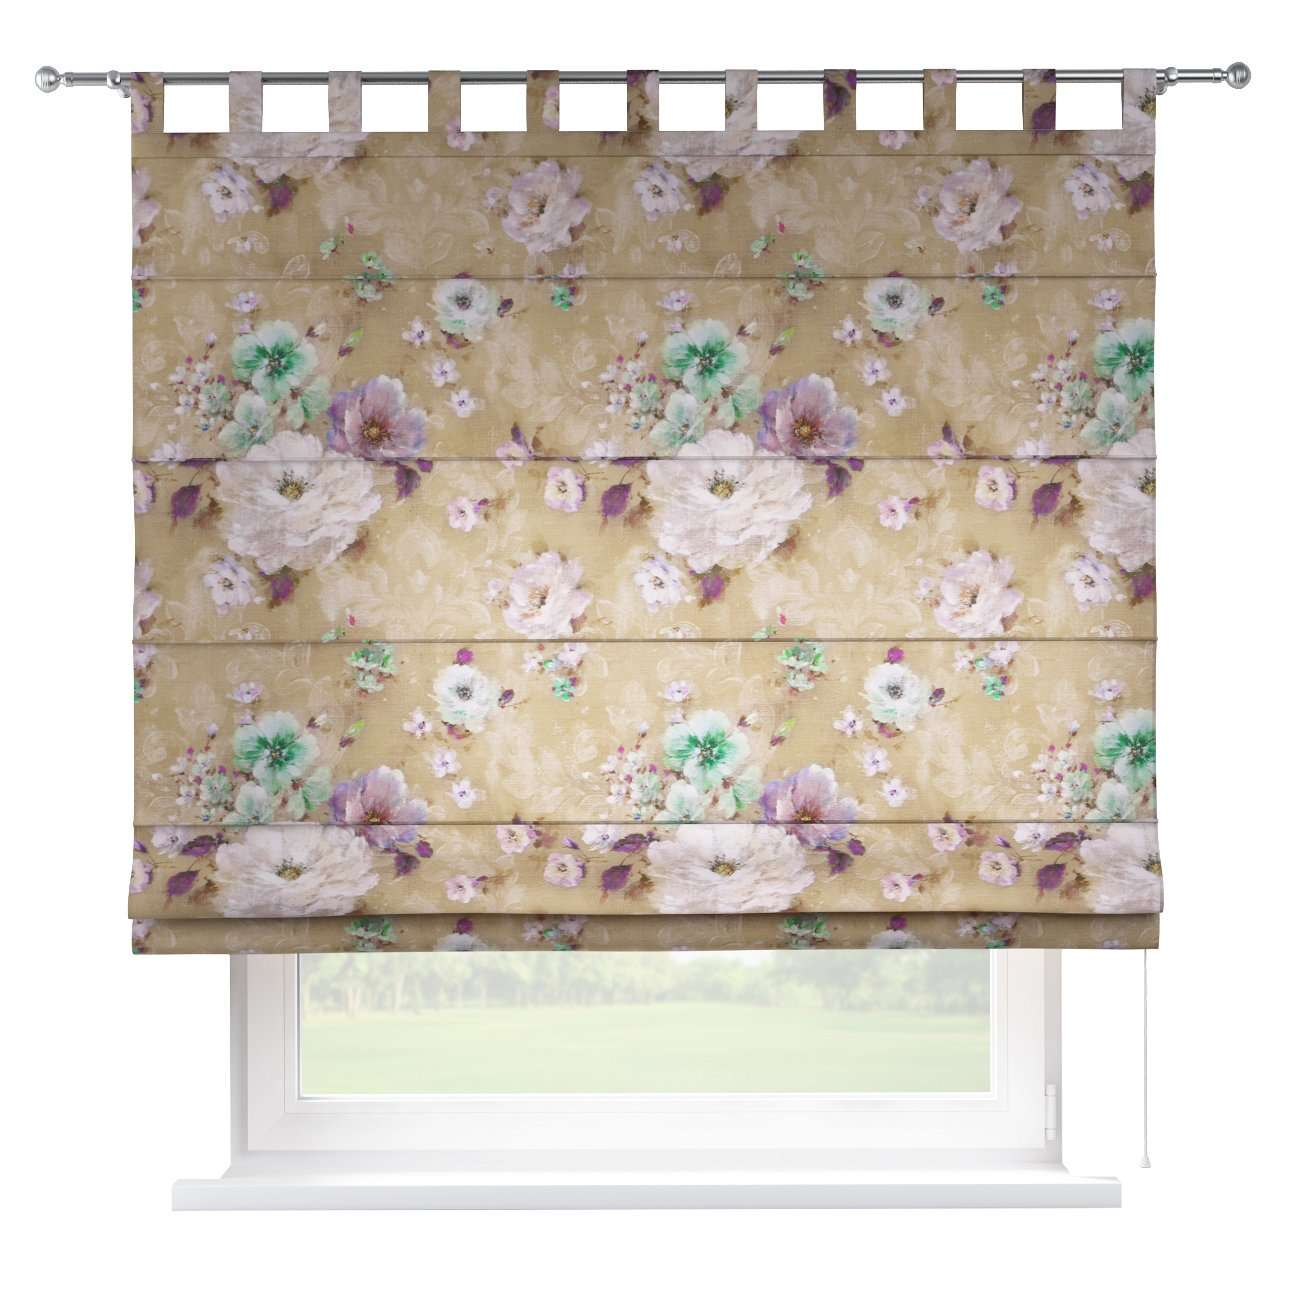 Verona tab top roman blind 80 x 170 cm (31.5 x 67 inch) in collection Monet, fabric: 137-82